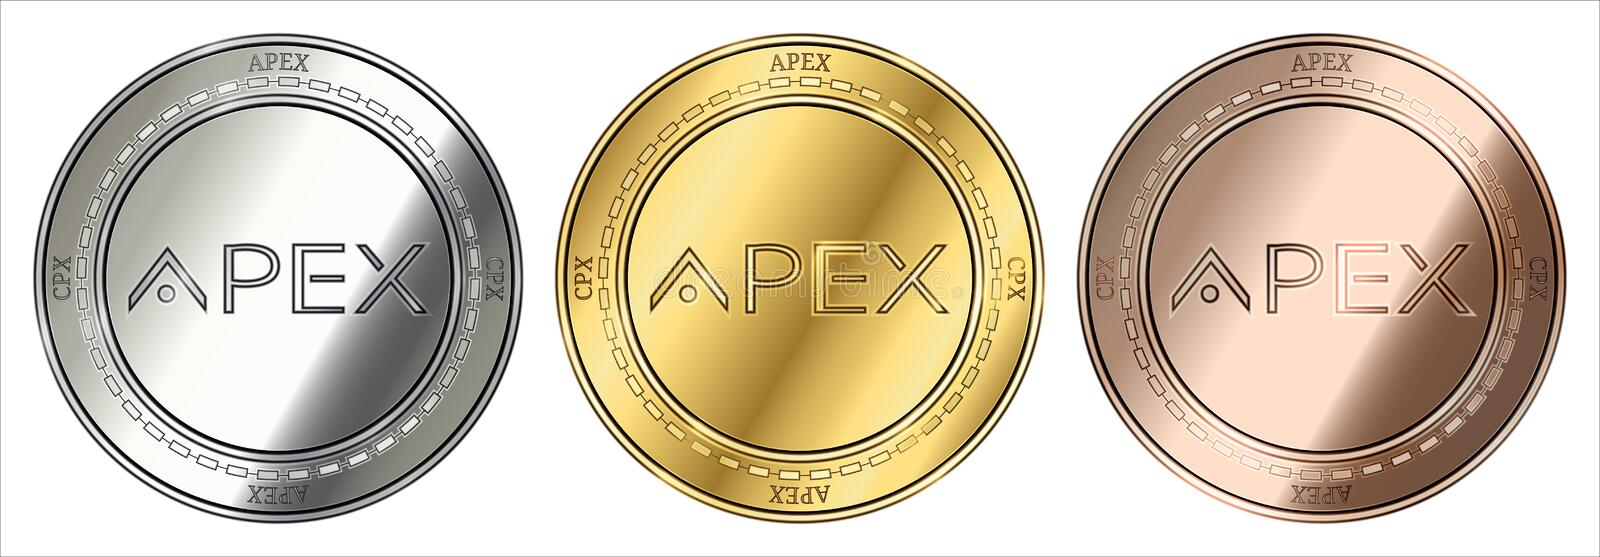 Apex CPX coin set. Gold, silver and bronze Apex CPX cryptocurrency coin. Apex CPX coin set stock illustration